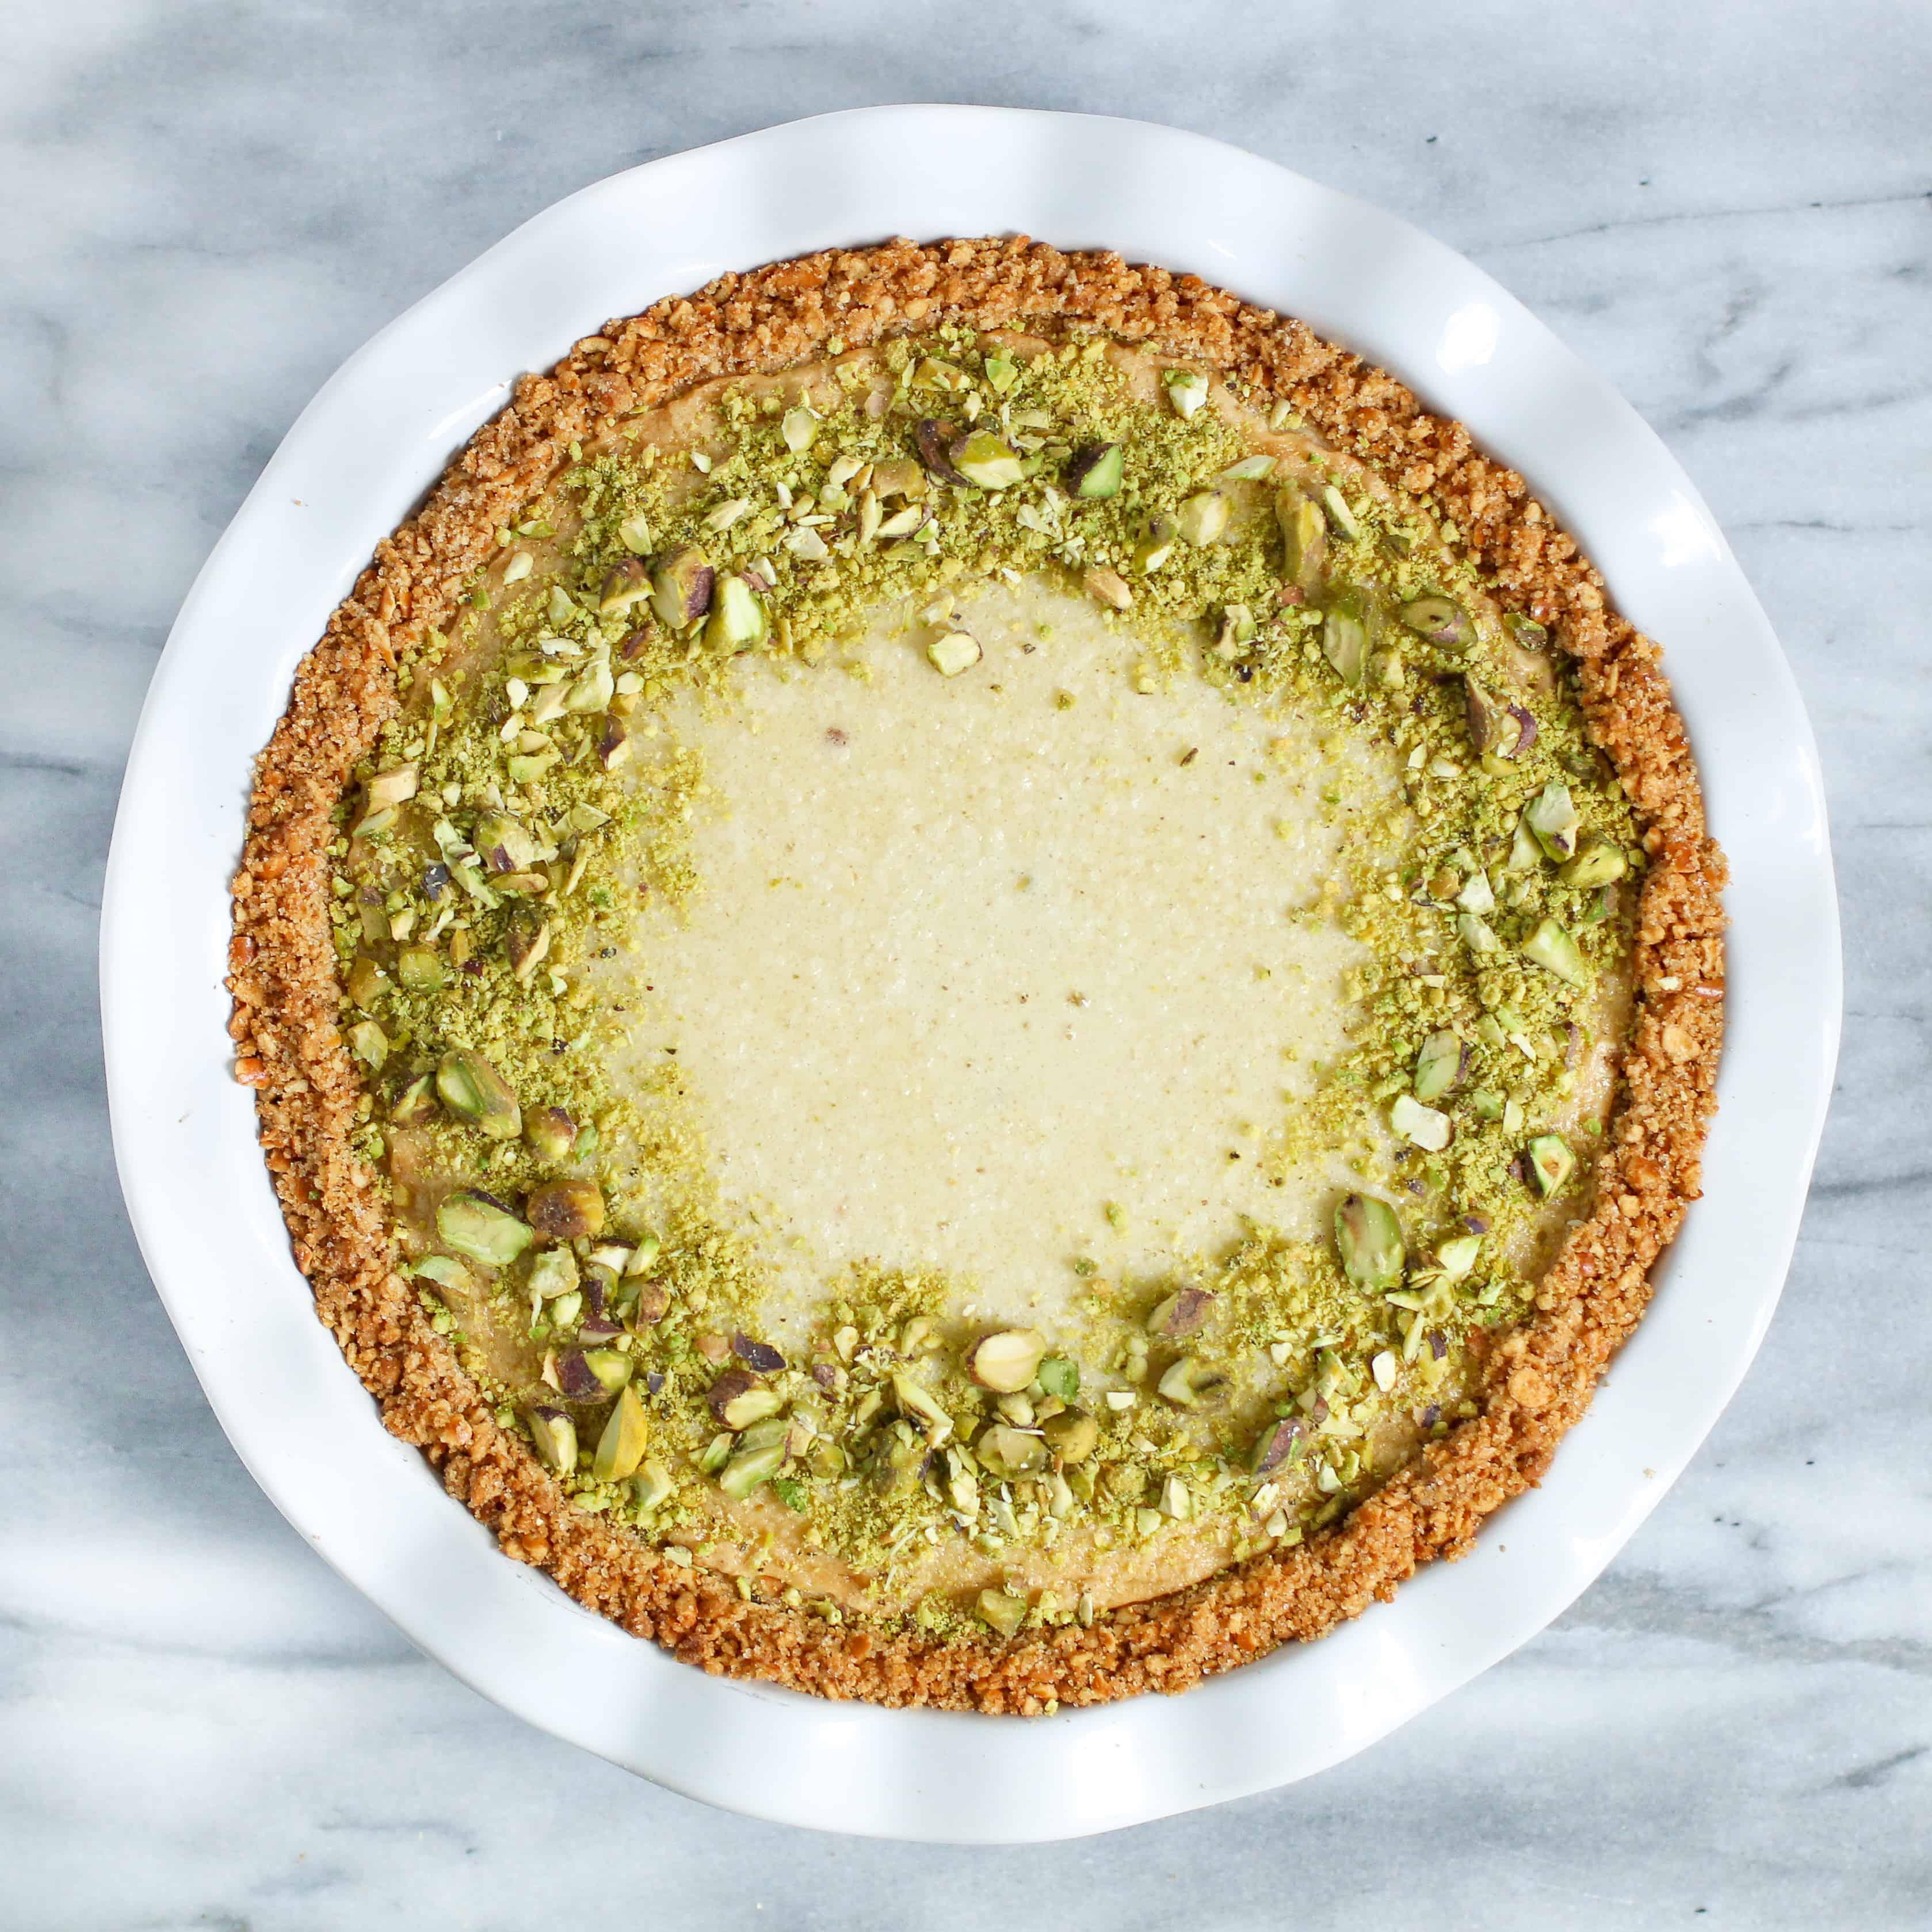 decorated pistachio pie without whipped cream